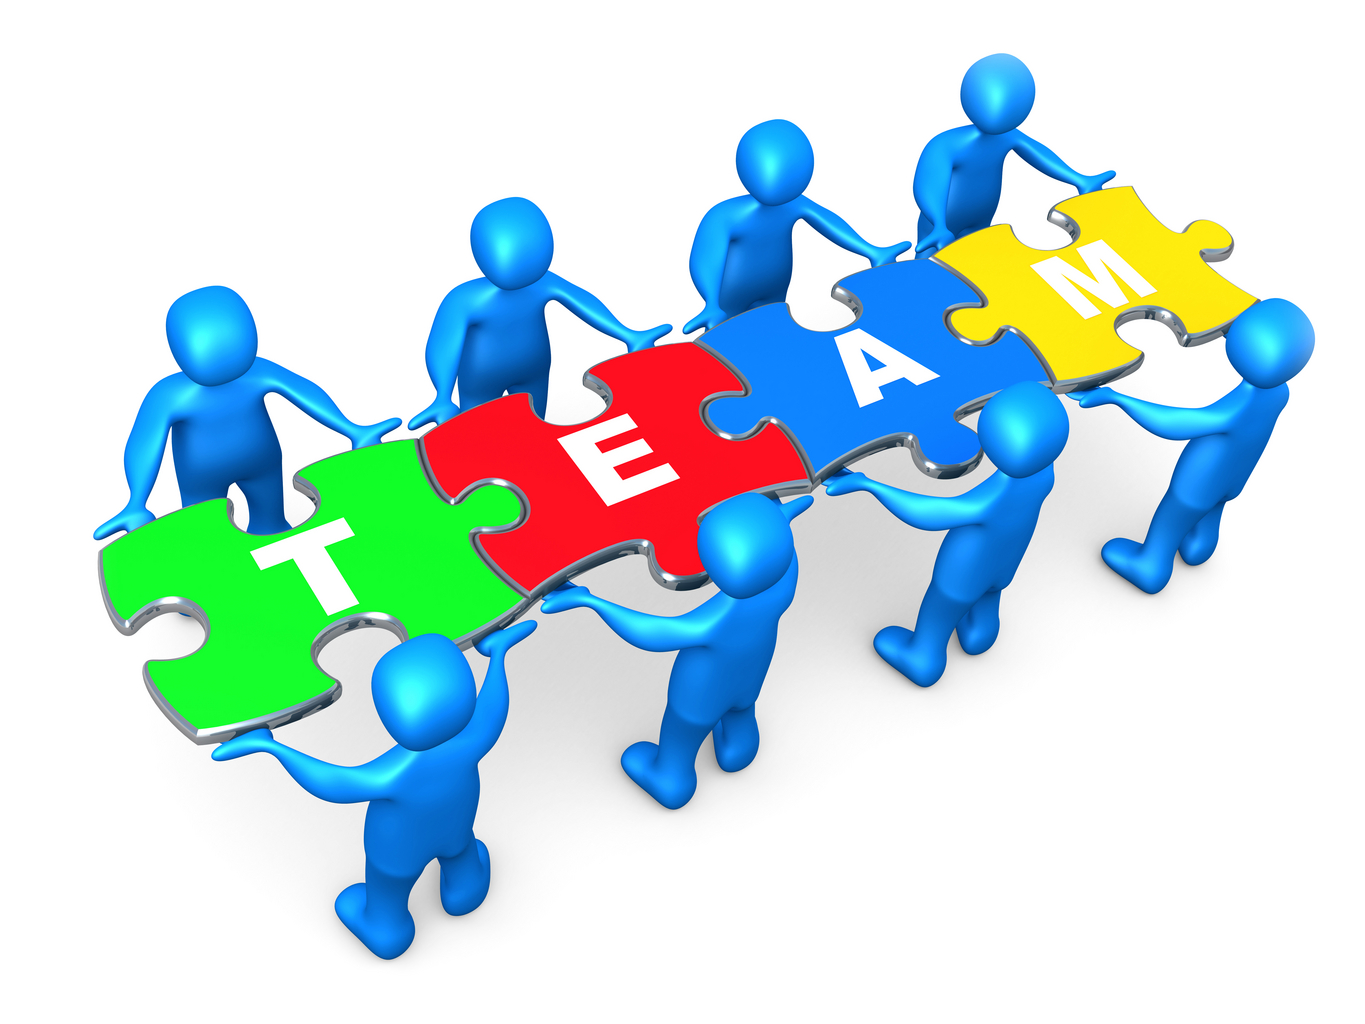 Go team working together as a team free clipart images